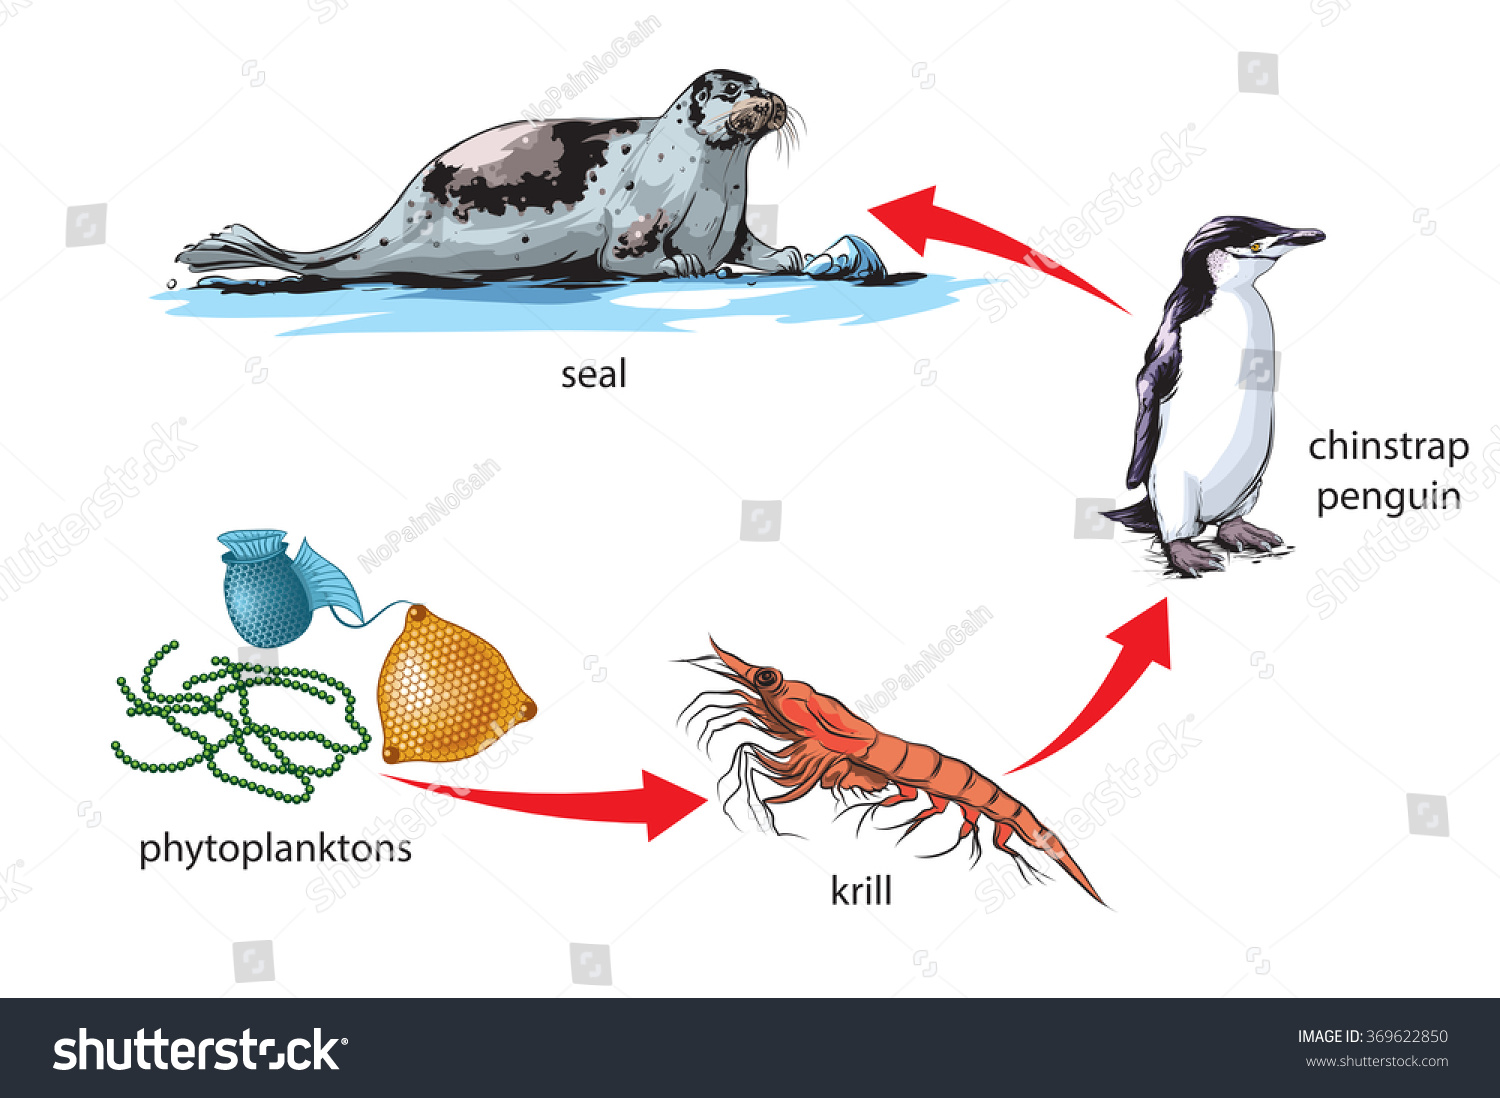 emperor penguin food chain - photo #20